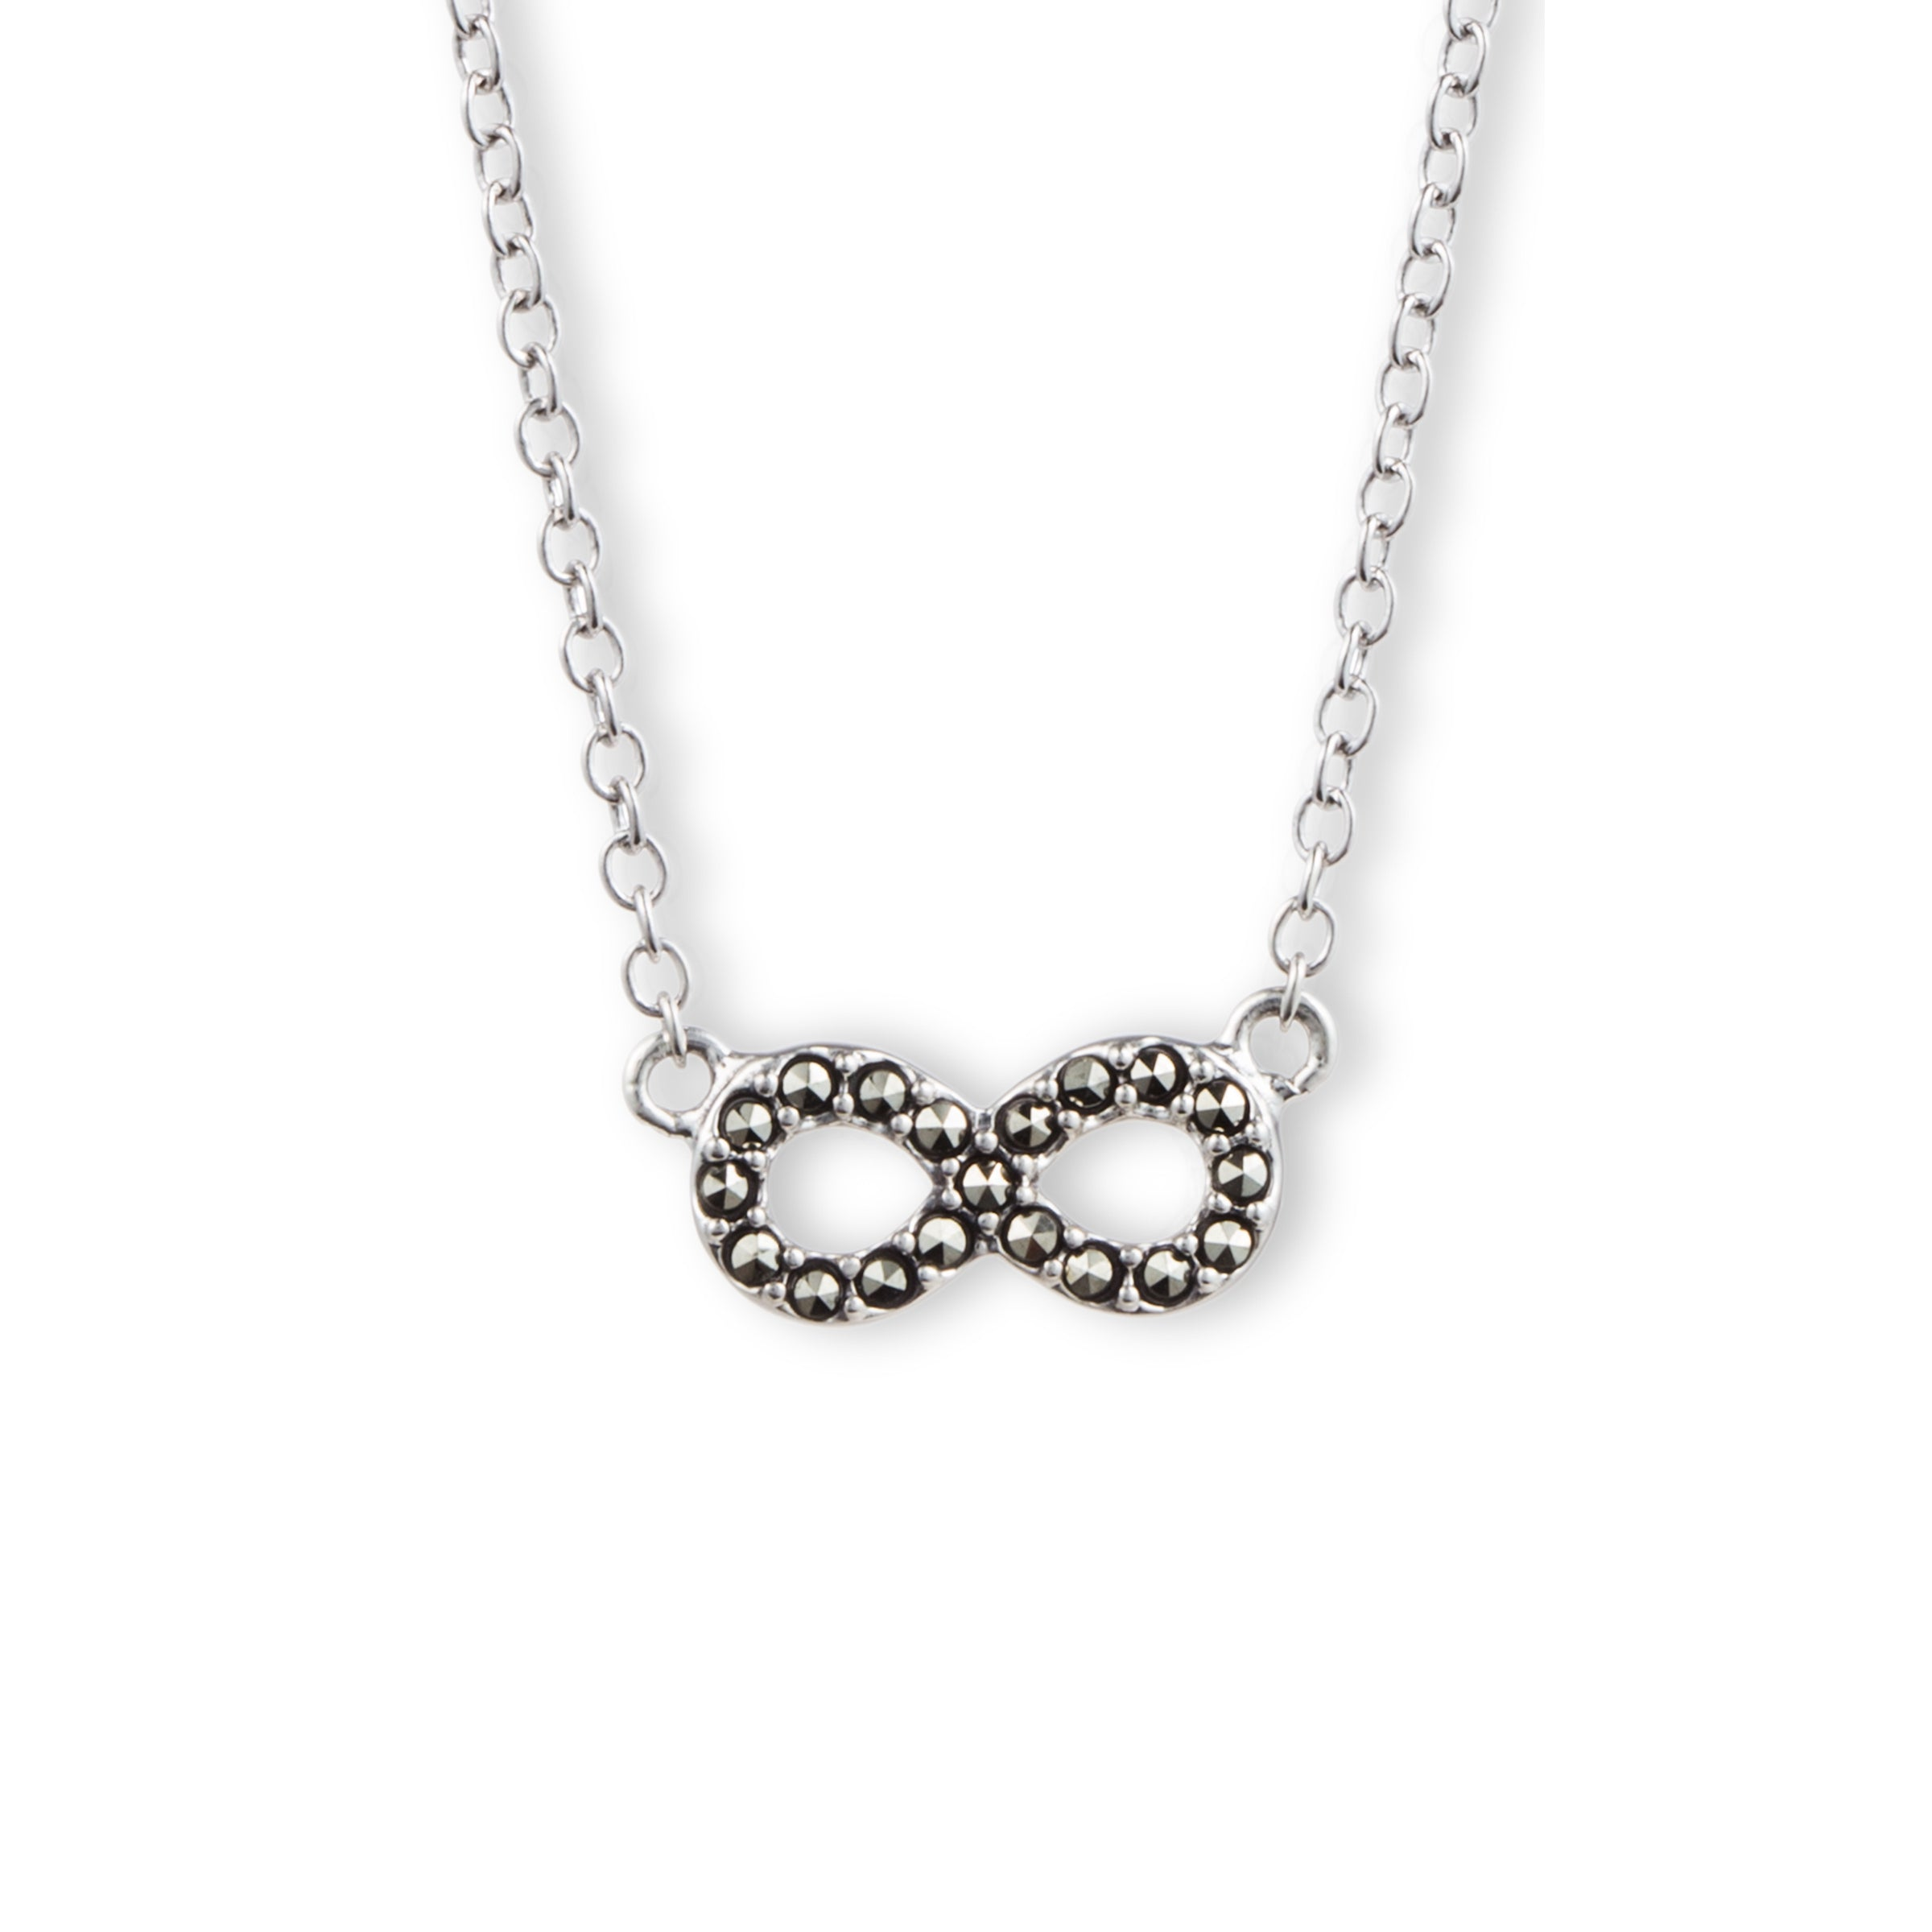 Reversible Figure Eight Design Necklace, Sterling Silver